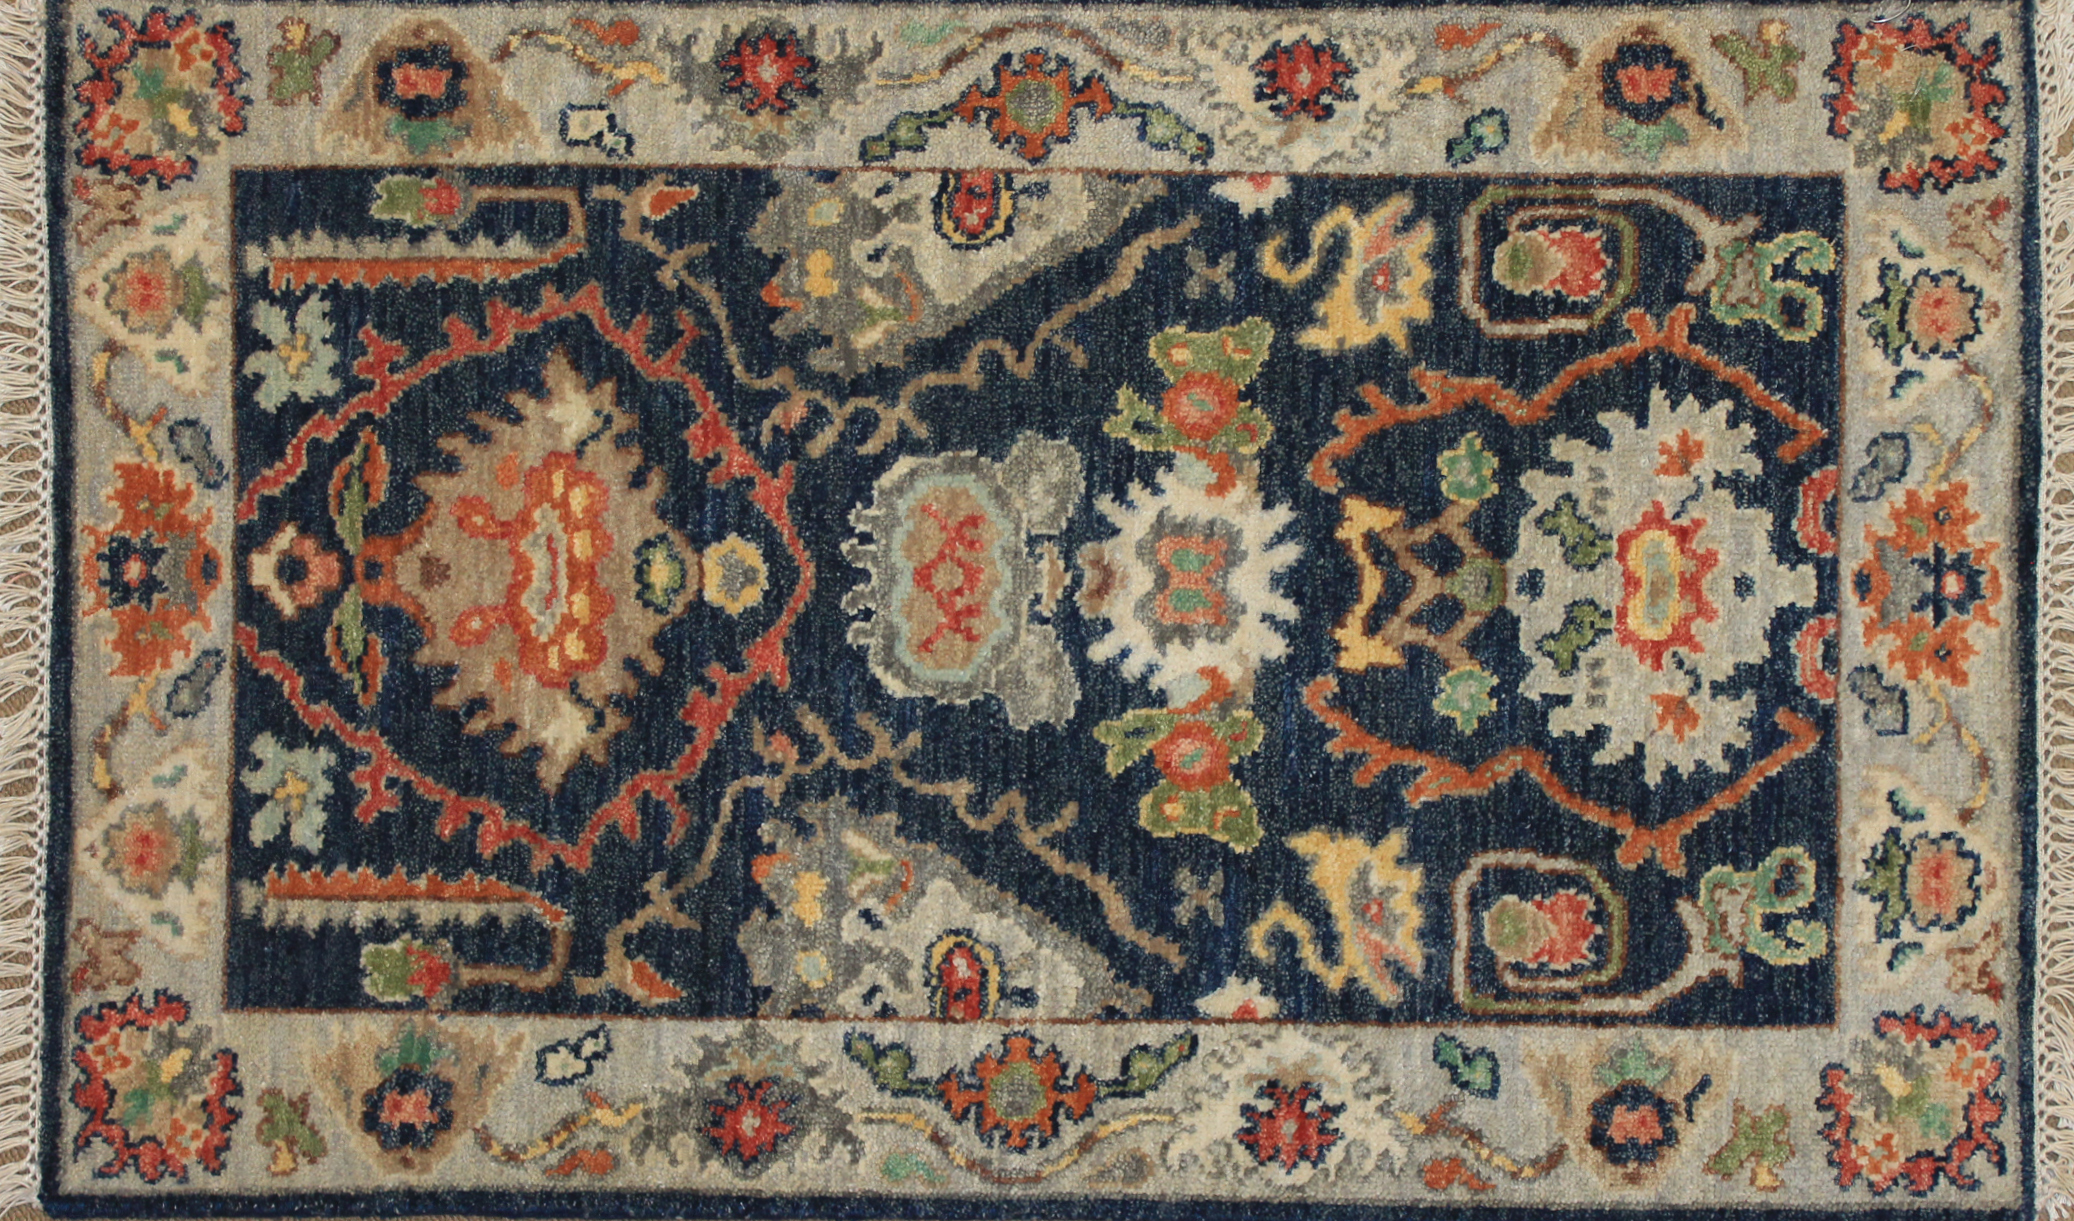 2X3 Traditional Hand Knotted Wool Area Rug - MR025025